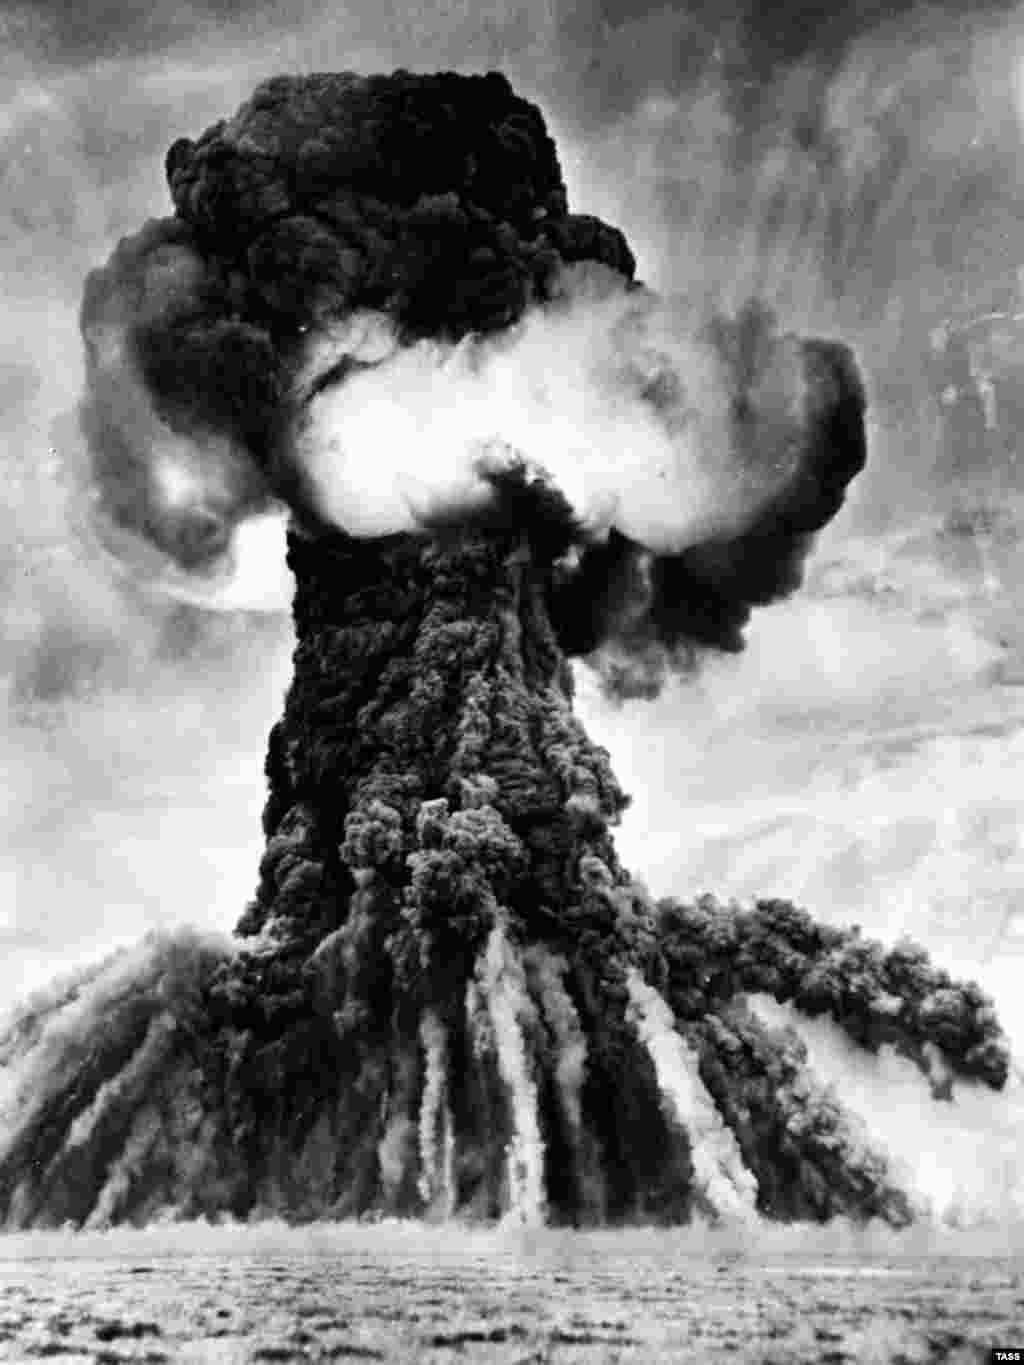 The first Soviet nuclear test at Semipalatinsk on August 29, 1949